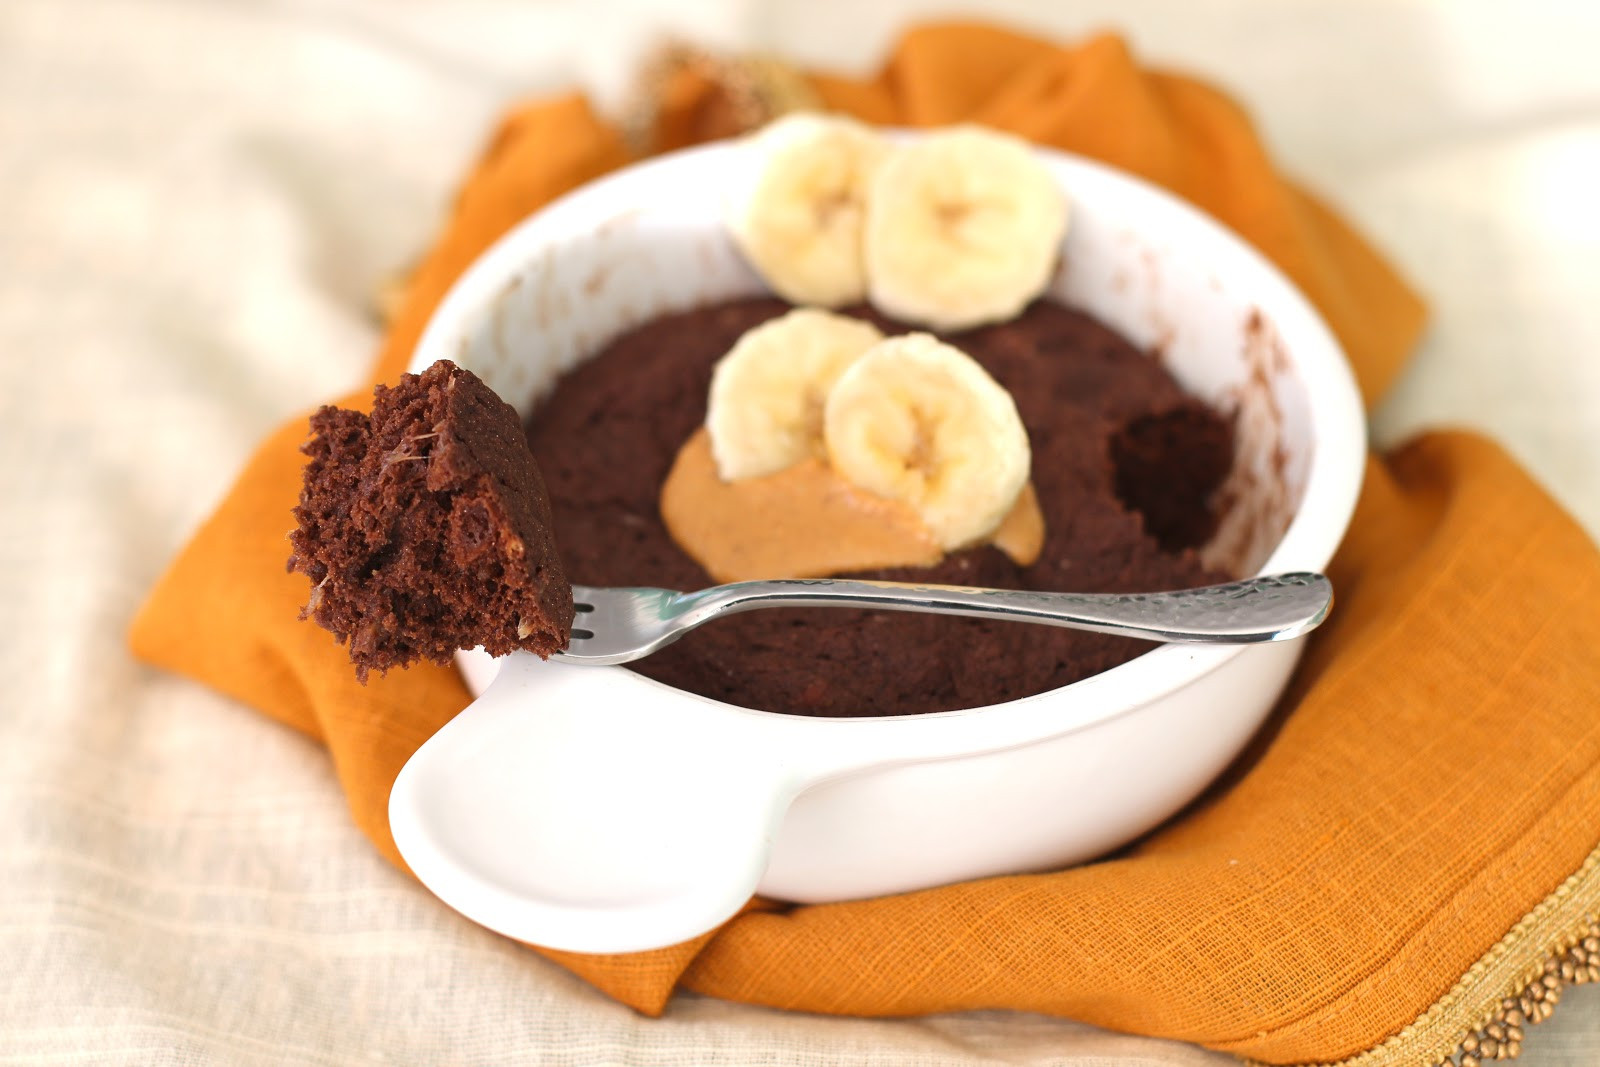 Healthy Desserts For One  Healthy Single Serving Chocolate Peanut Butter Banana